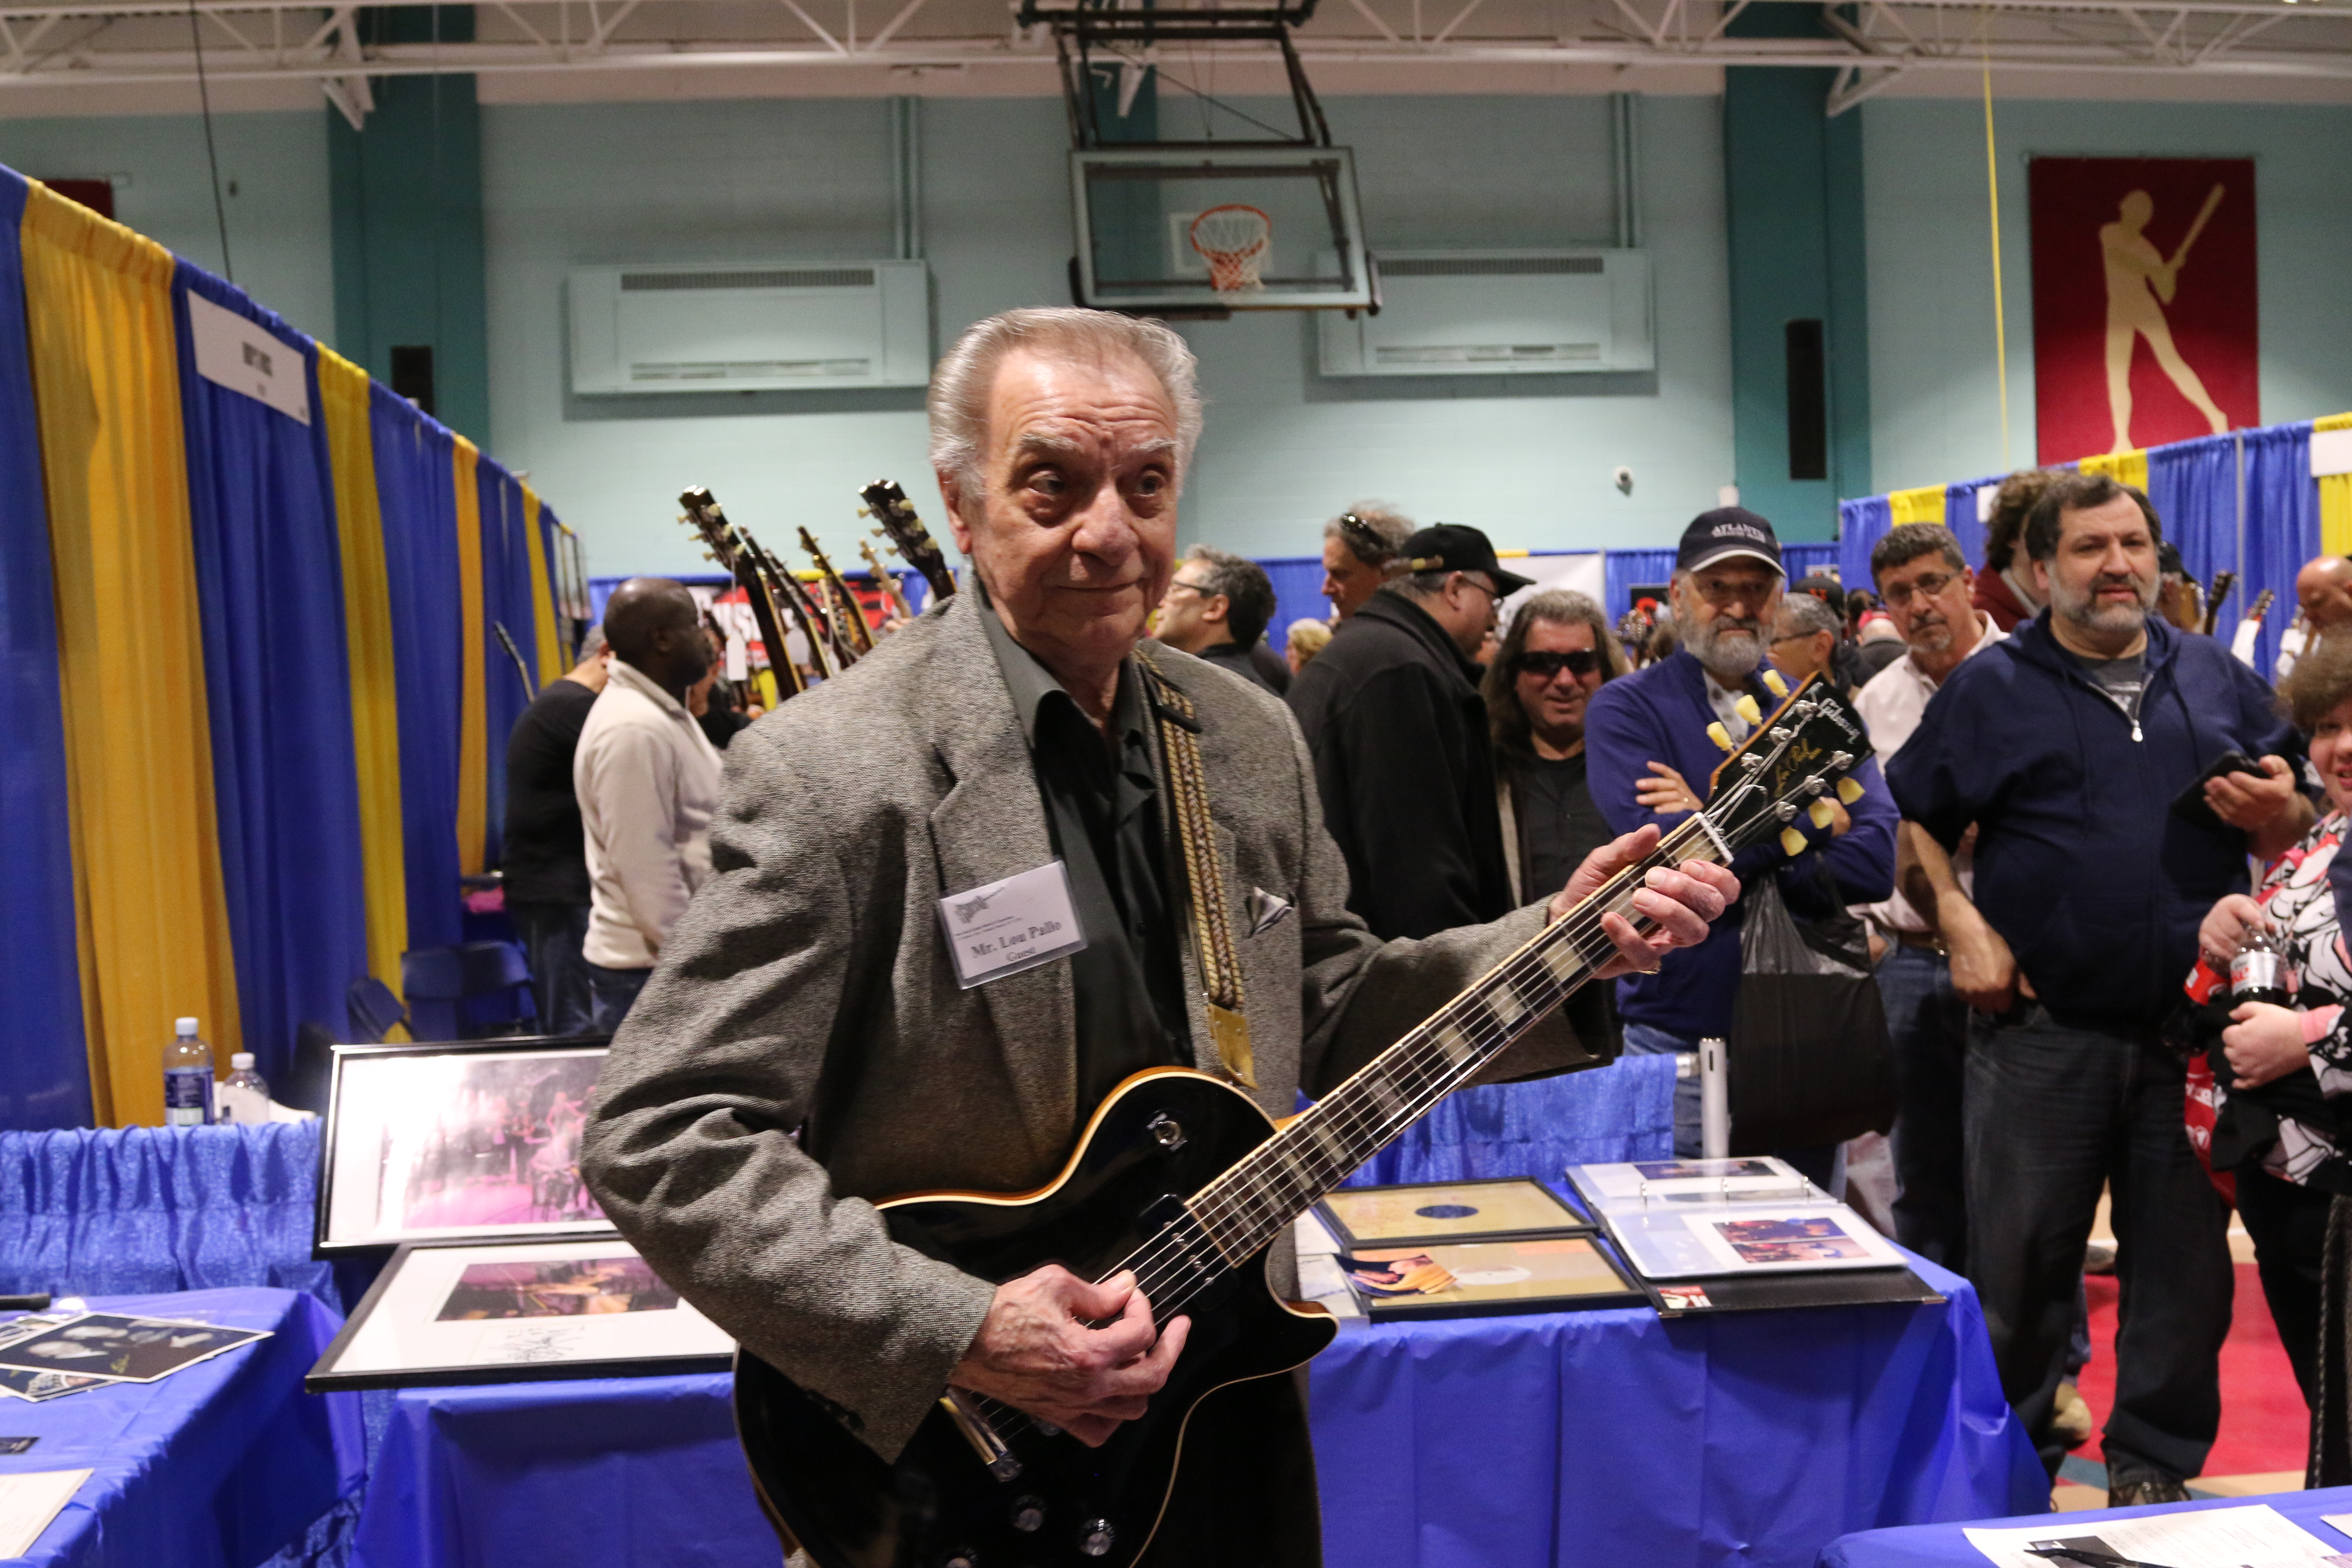 Lou Pallo entertains at the 4th Annual NY Guitar Expo.